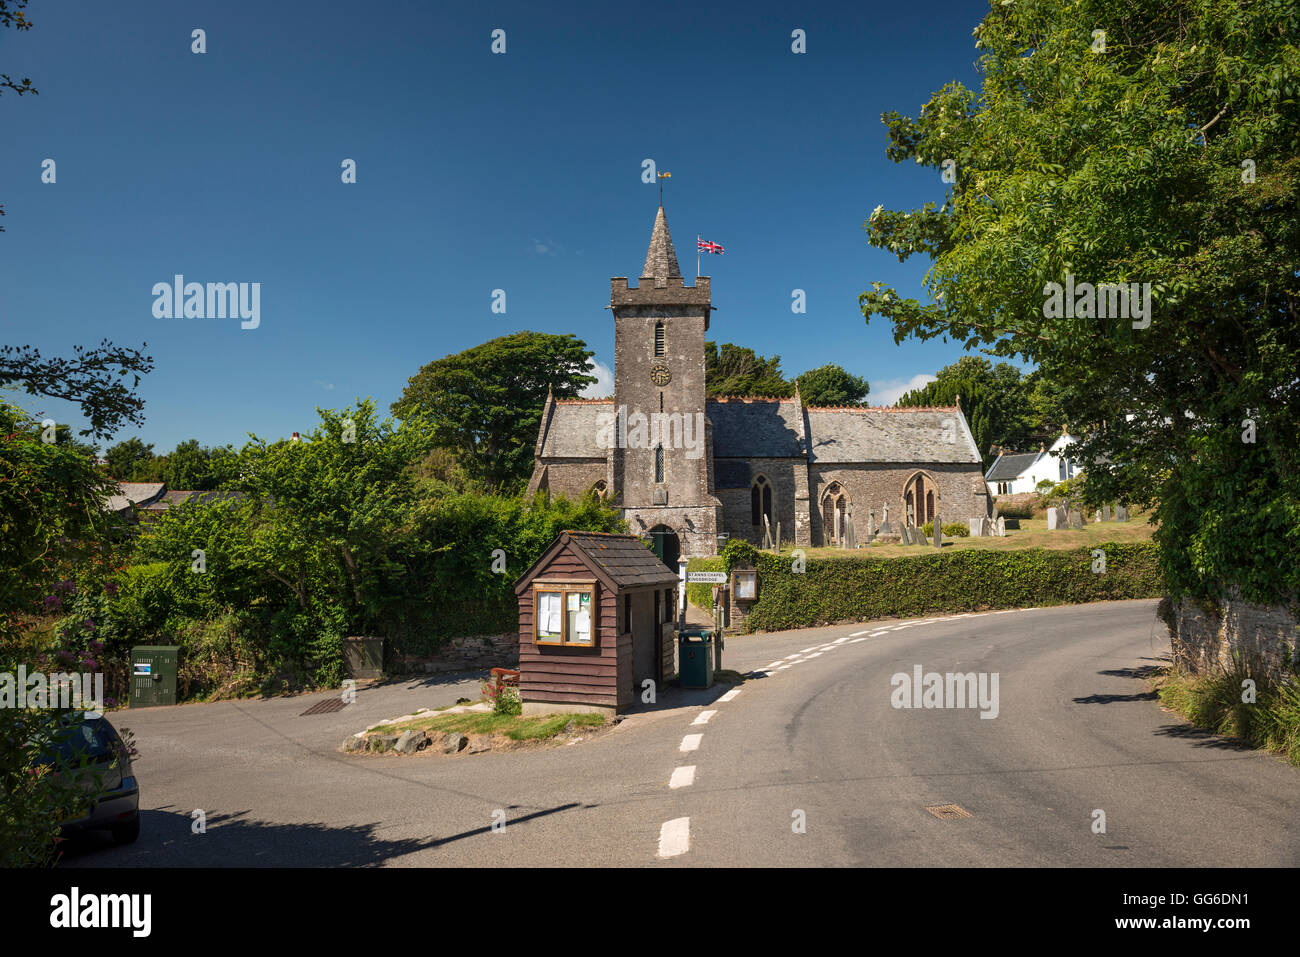 All Hallows church in the village of Ringmore in The South Hams, Devon, UK - Stock Image